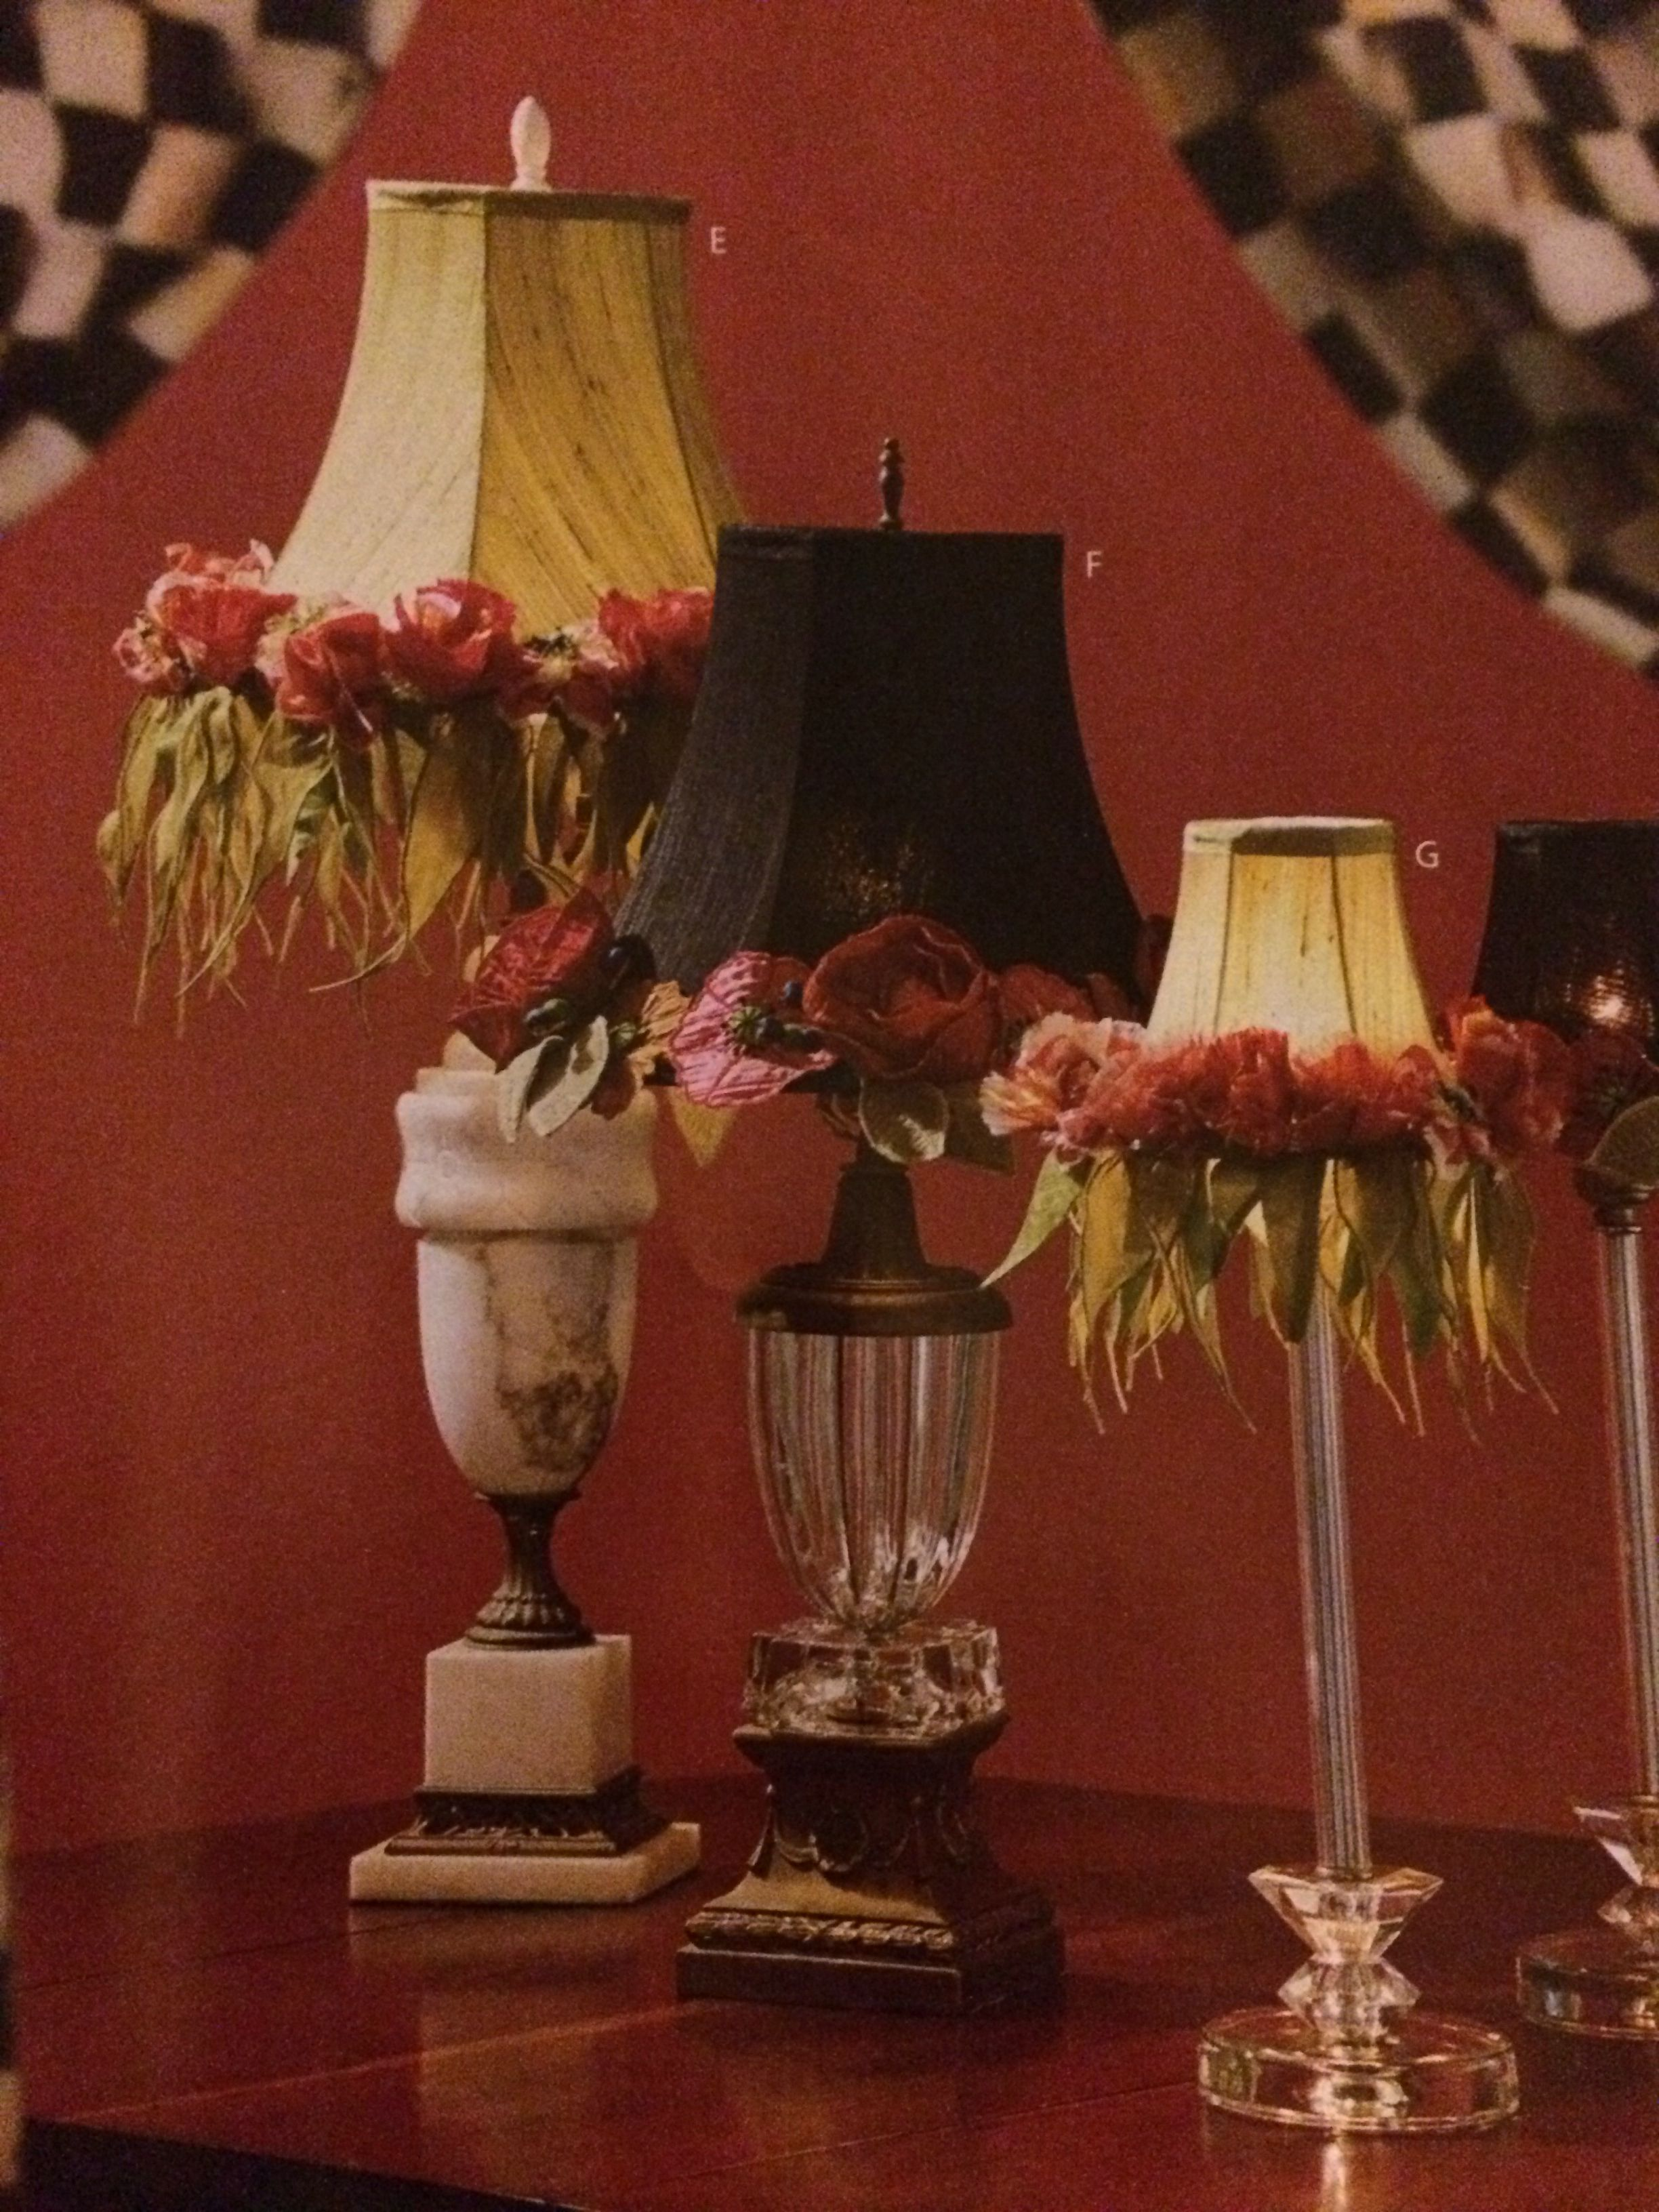 Embellished lap shades - love the look, not sure if they for my current decor